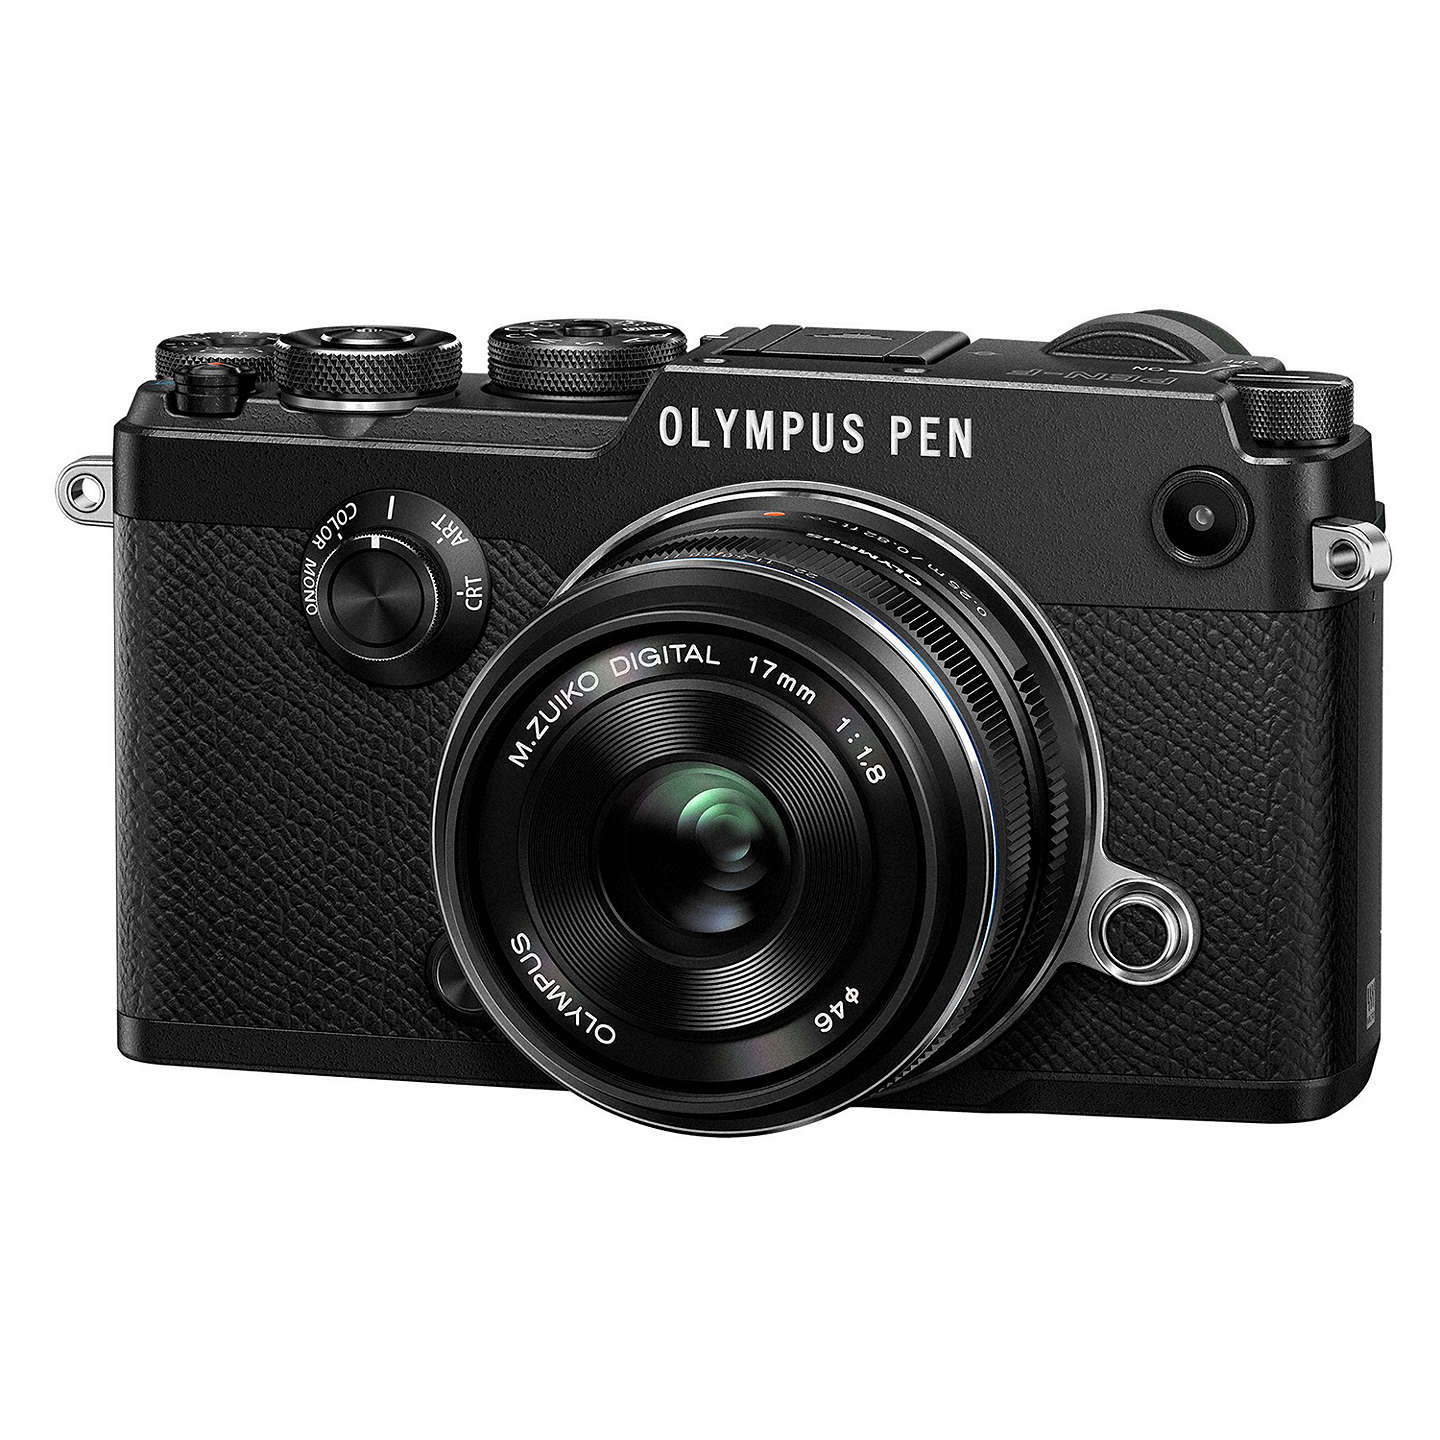 "BuyOlympus Pen F Compact System Camera With M.ZUIKO 17mm Prime Lens, HD 1080p, 20.3MP, Wi-Fi, Front Creative Dial, 5-Axis IS, 3"" Vari-Angle Touch Monitor, Black Online at johnlewis.com"